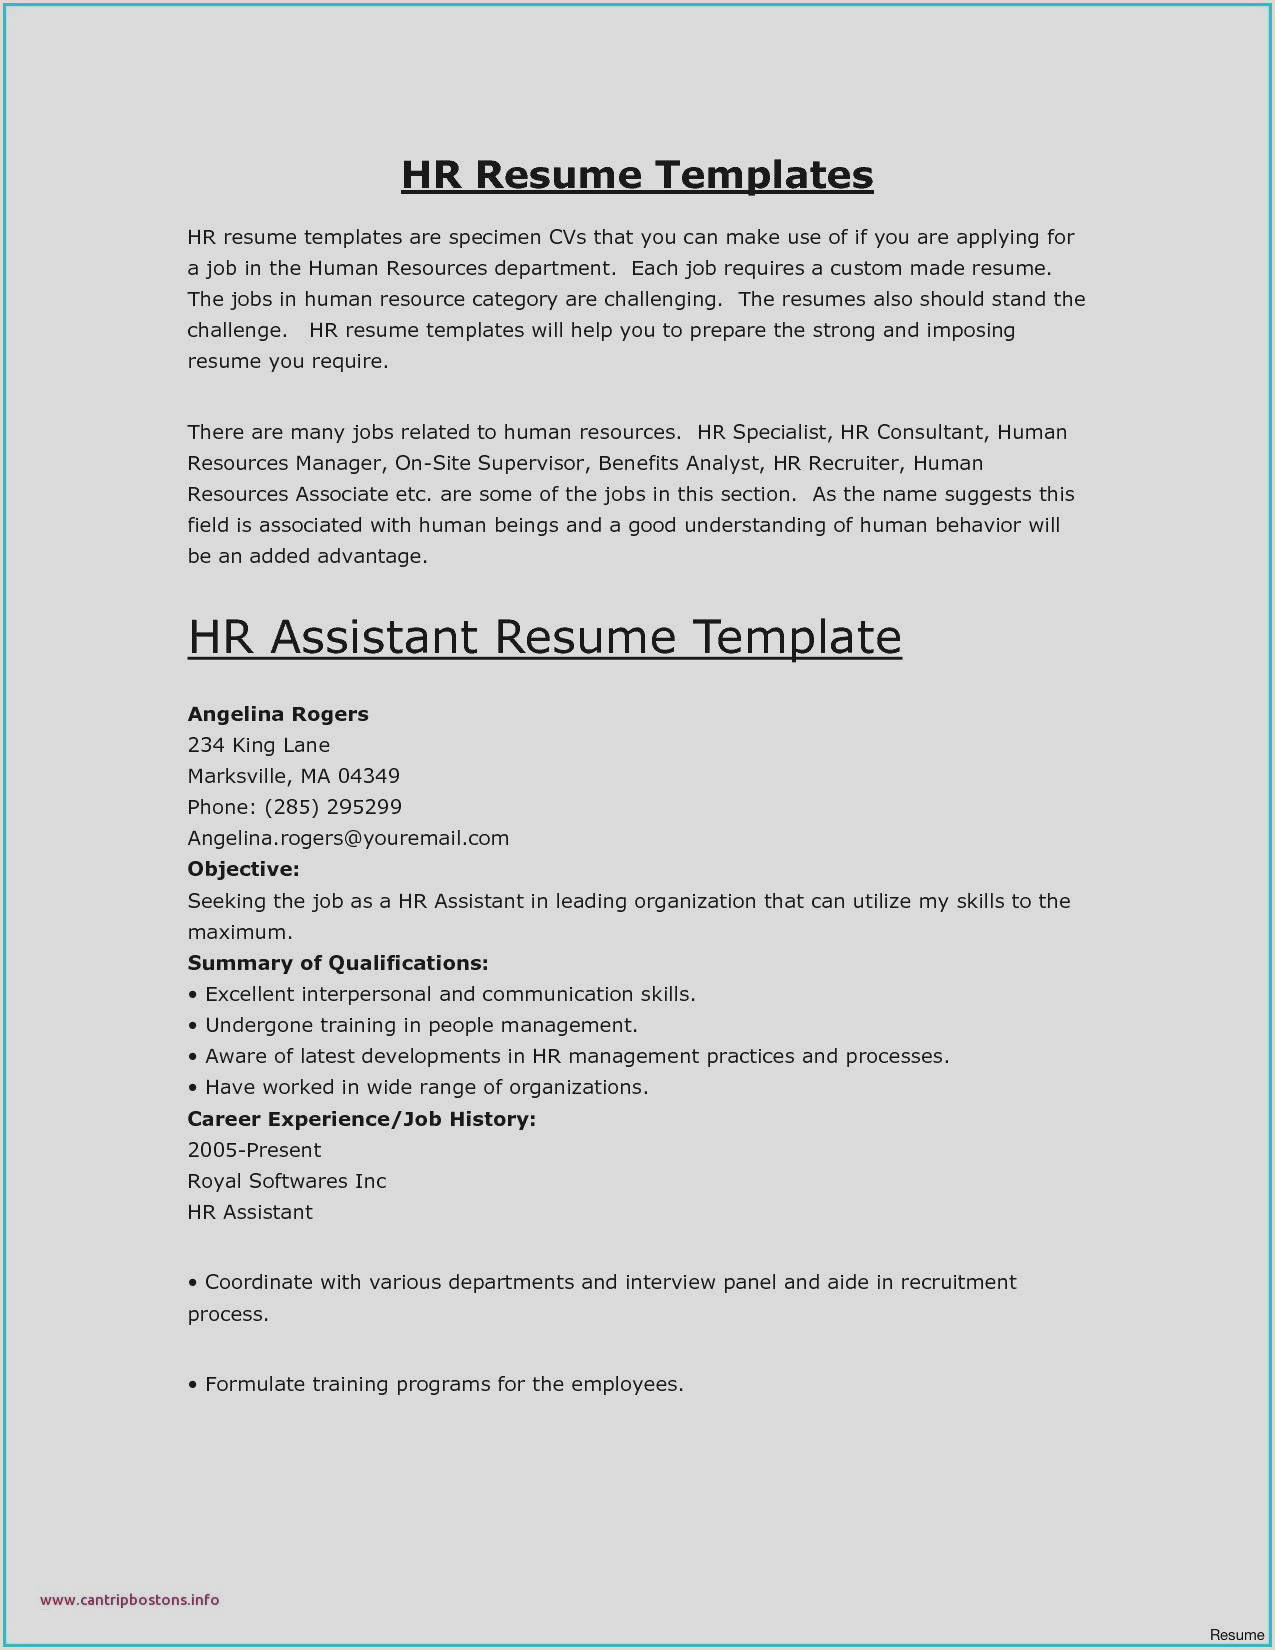 Resume format for Job Fresher Beautiful What is Good Resume Paper